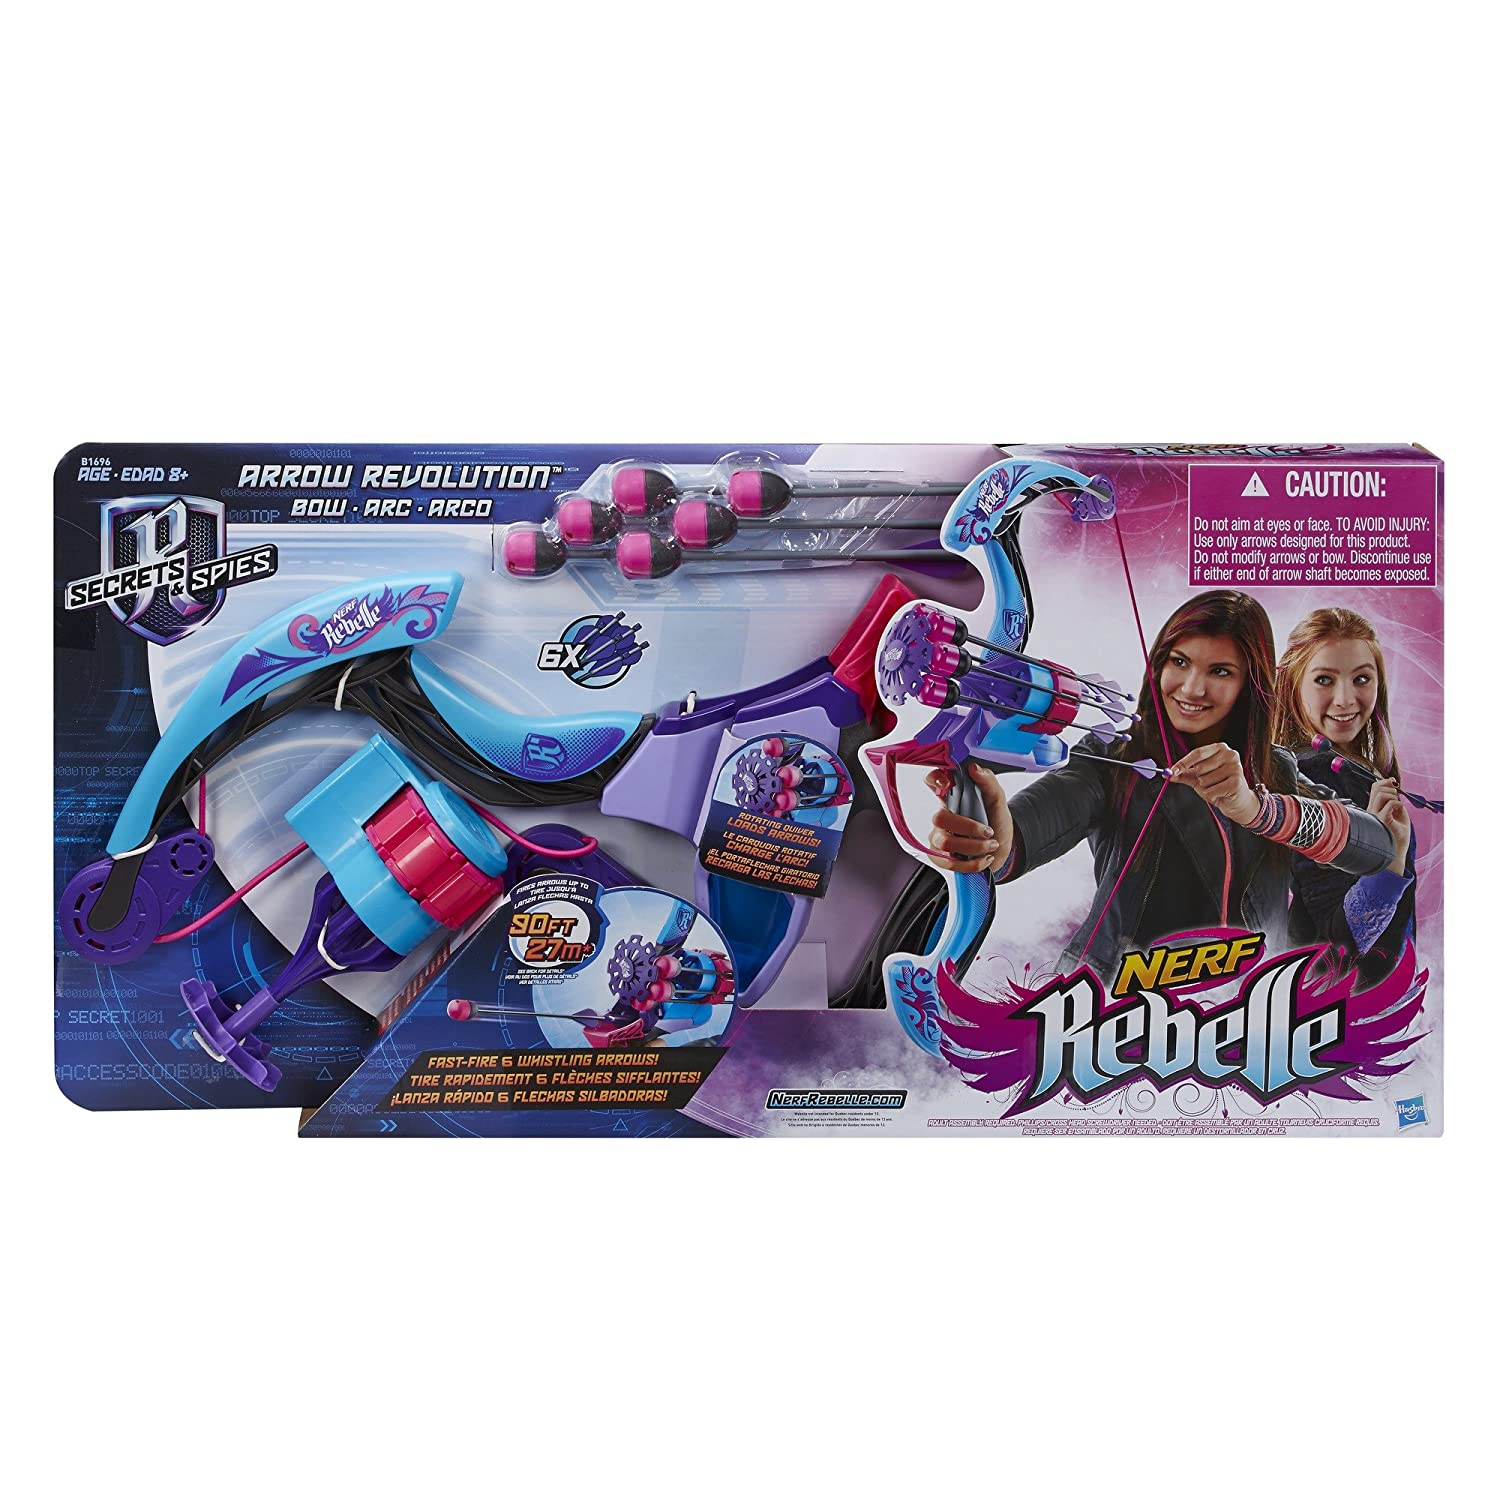 Amazon Nerf Rebelle Secrets and Spies Arrow Revolution Bow Toys & Games